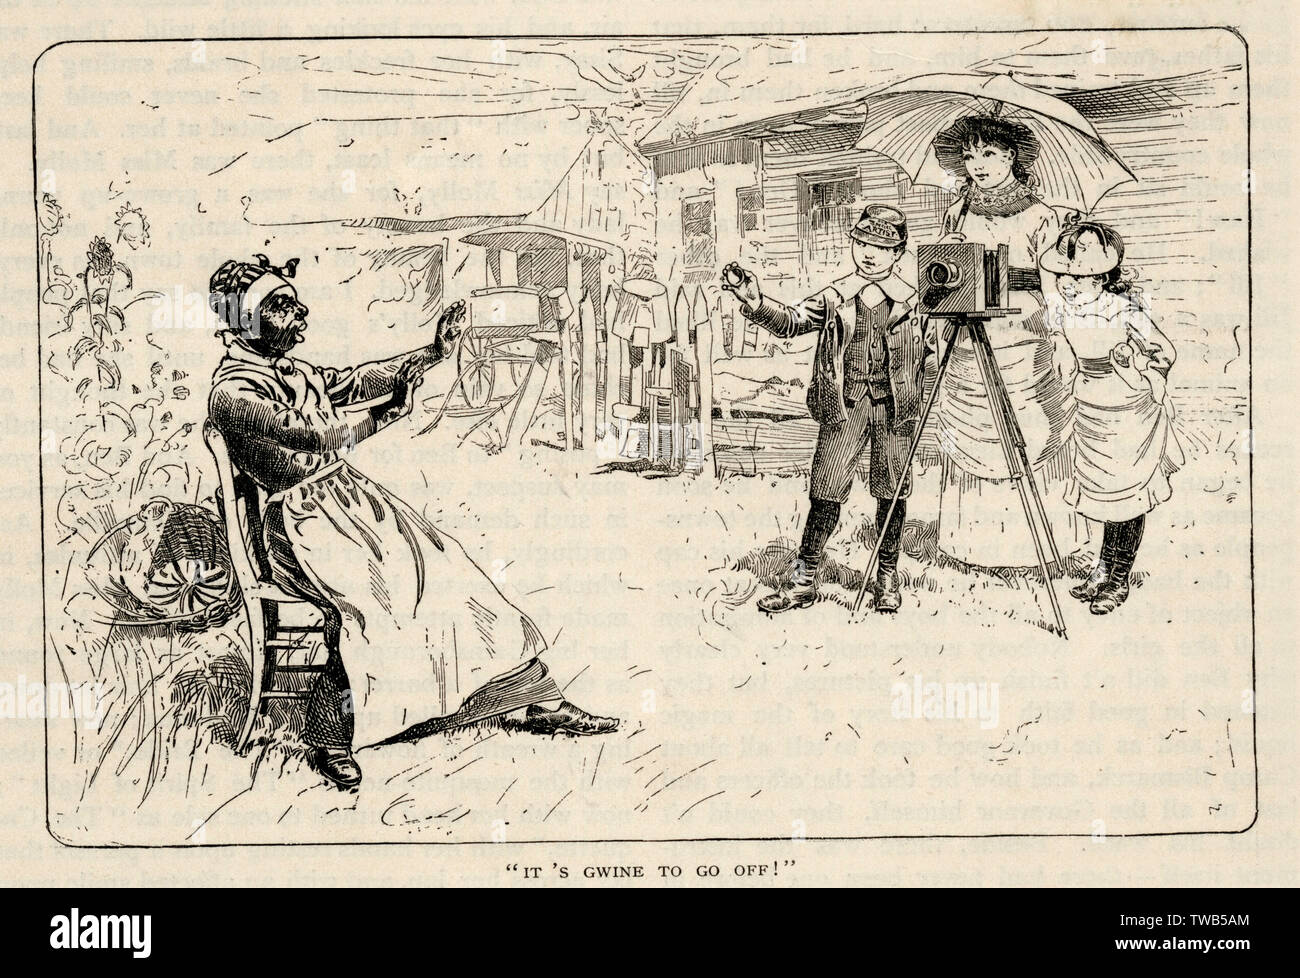 """An anxious woman is shown in panic as she is sitting waiting to have her photograph captured. Beneath the illustration it reads, """"It's gwine to go off!"""" overall  presenting an example of racist attitudes during the time period.      Date: circa 1890s - Stock Image"""